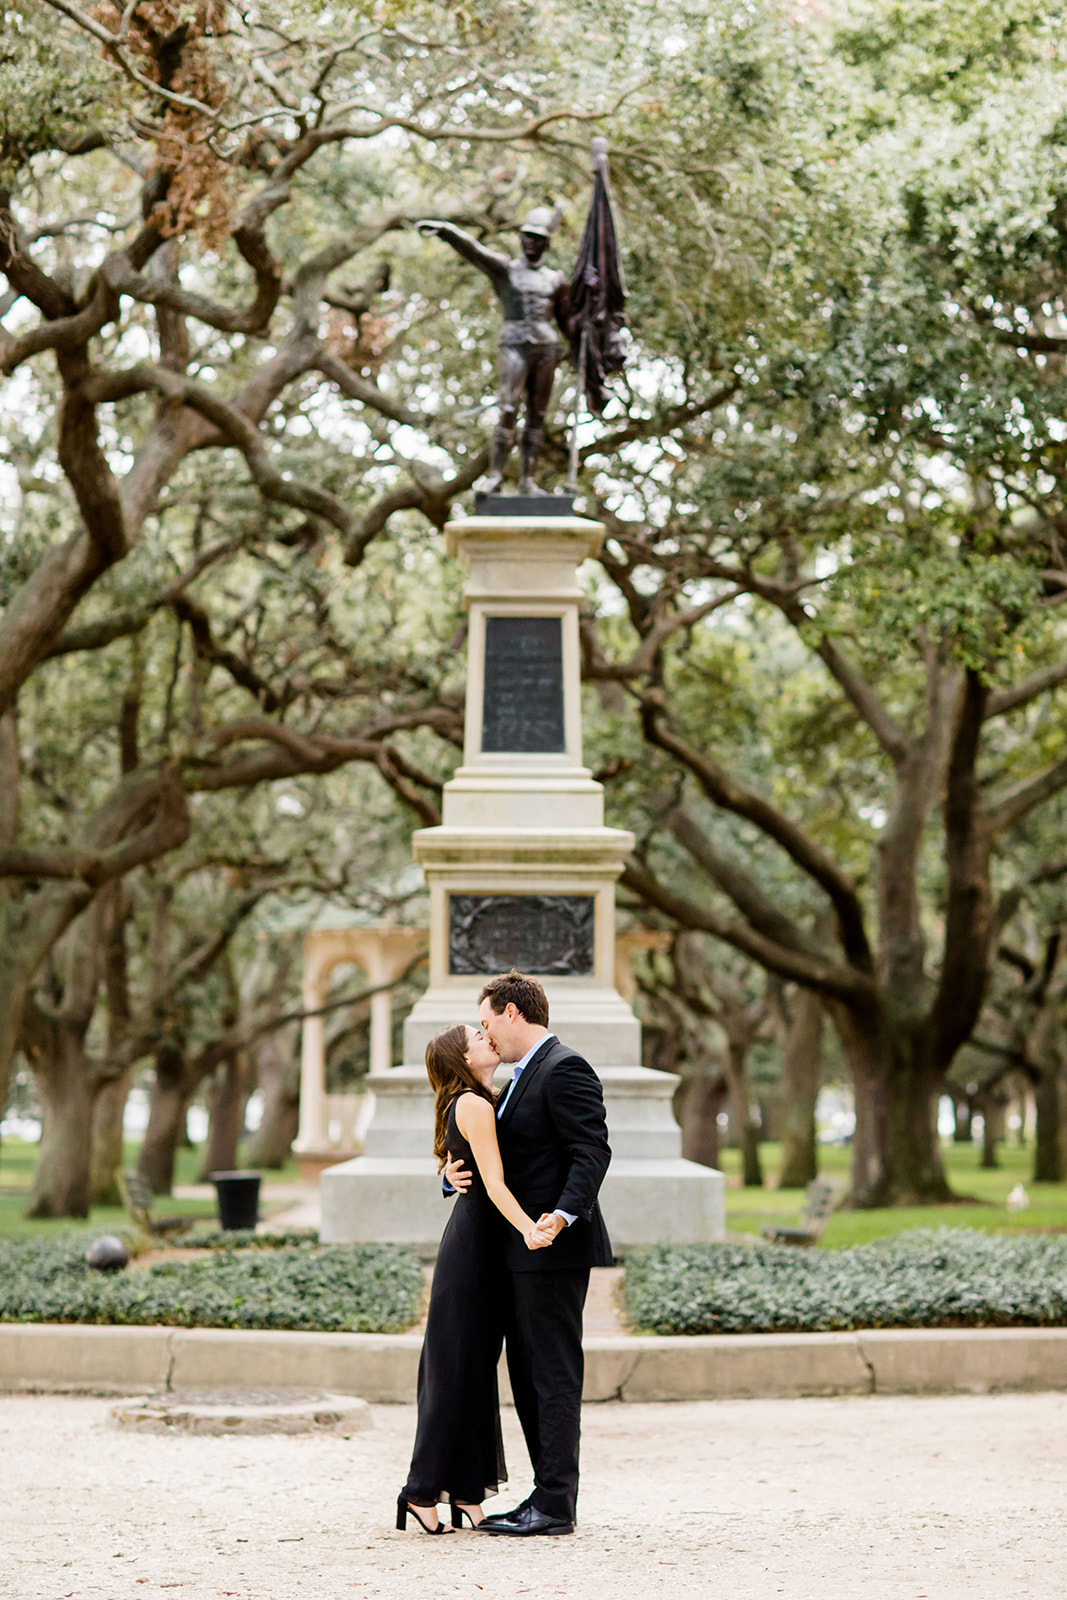 Victoria  Daves Charleston SC Engagement Shoot - Image Property of www.j-dphoto.com